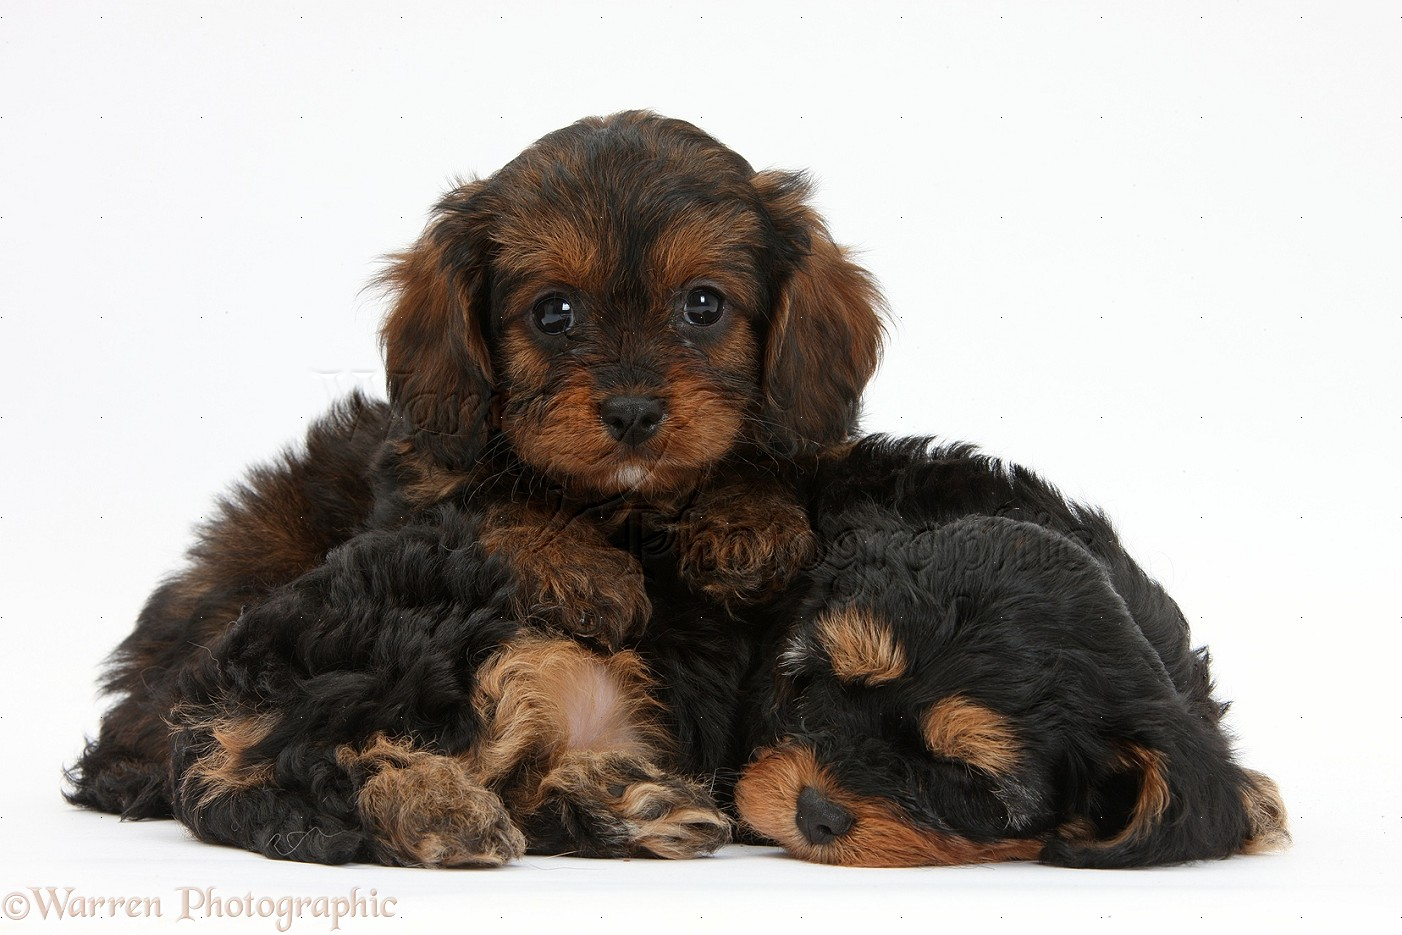 Cavapoo Haircut http://www.warrenphotographic.co.uk/32381-sleepy-black-and-tan-cavapoo-pups